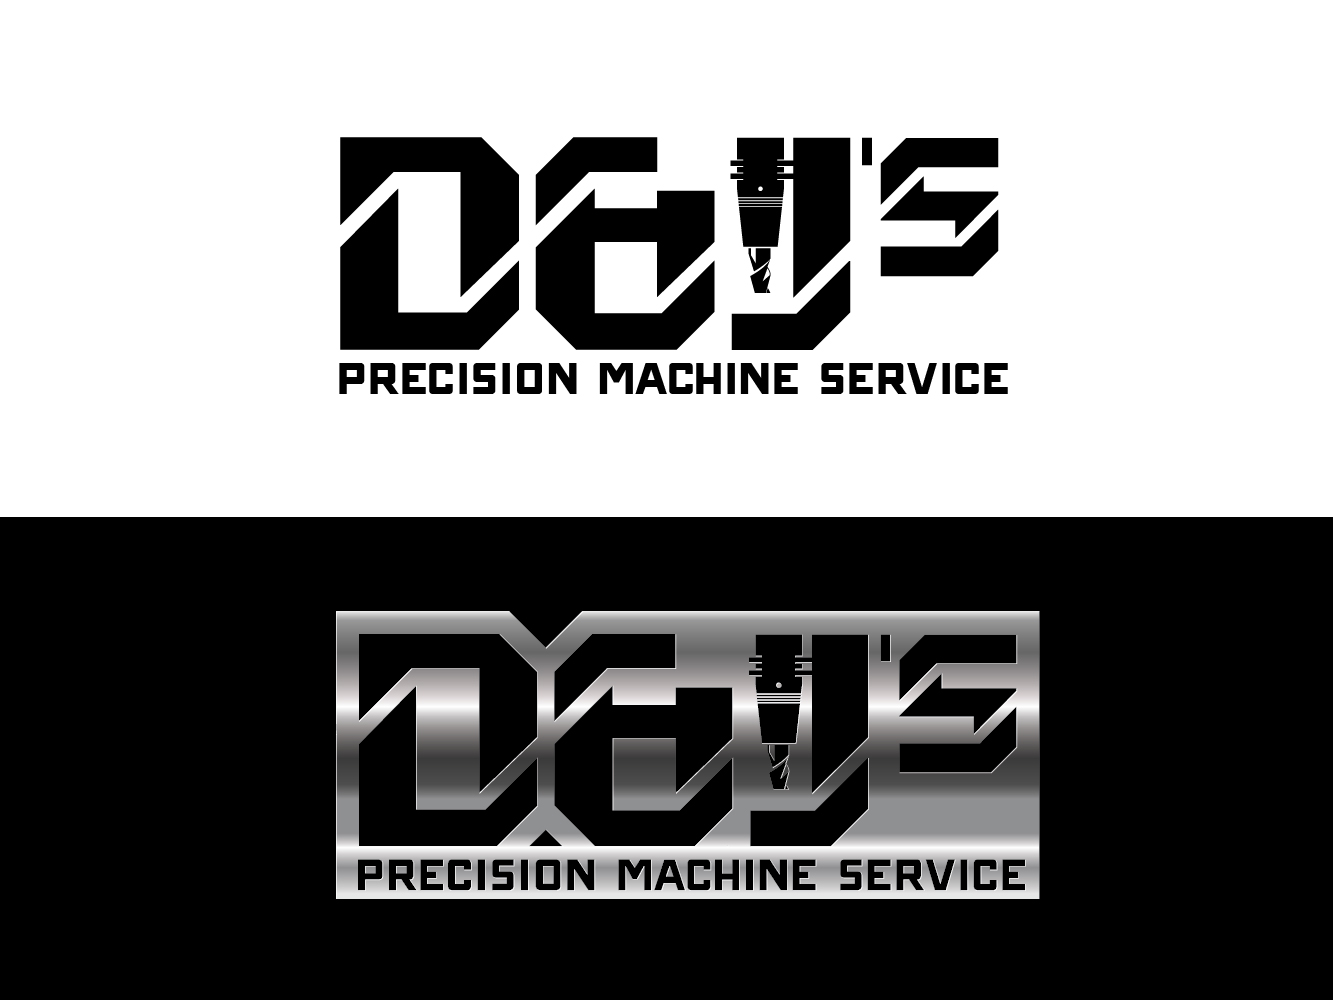 Logo Design by Cutris Lotter - Entry No. 104 in the Logo Design Contest Creative Logo Design for D & J's Precision Machine Services.